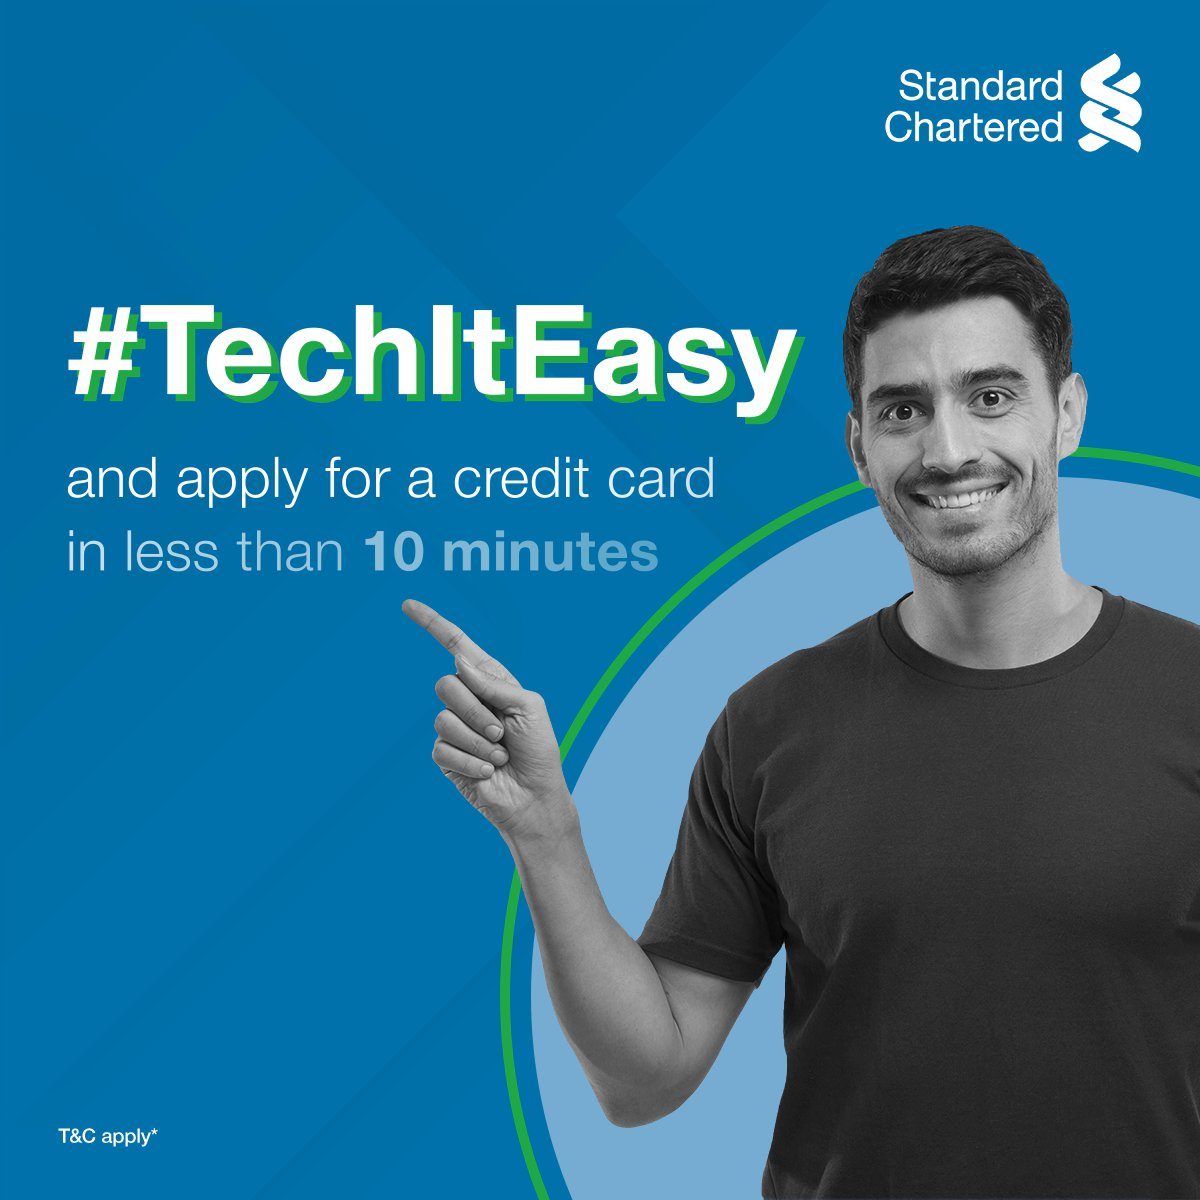 You build your shopping cart, we will add in extra joy! Sit back & #TechItEasy with the Standard Chartered virtual credit card! Simply fill the online form, verify your documents with Video KYC and get your credit card! To know more,